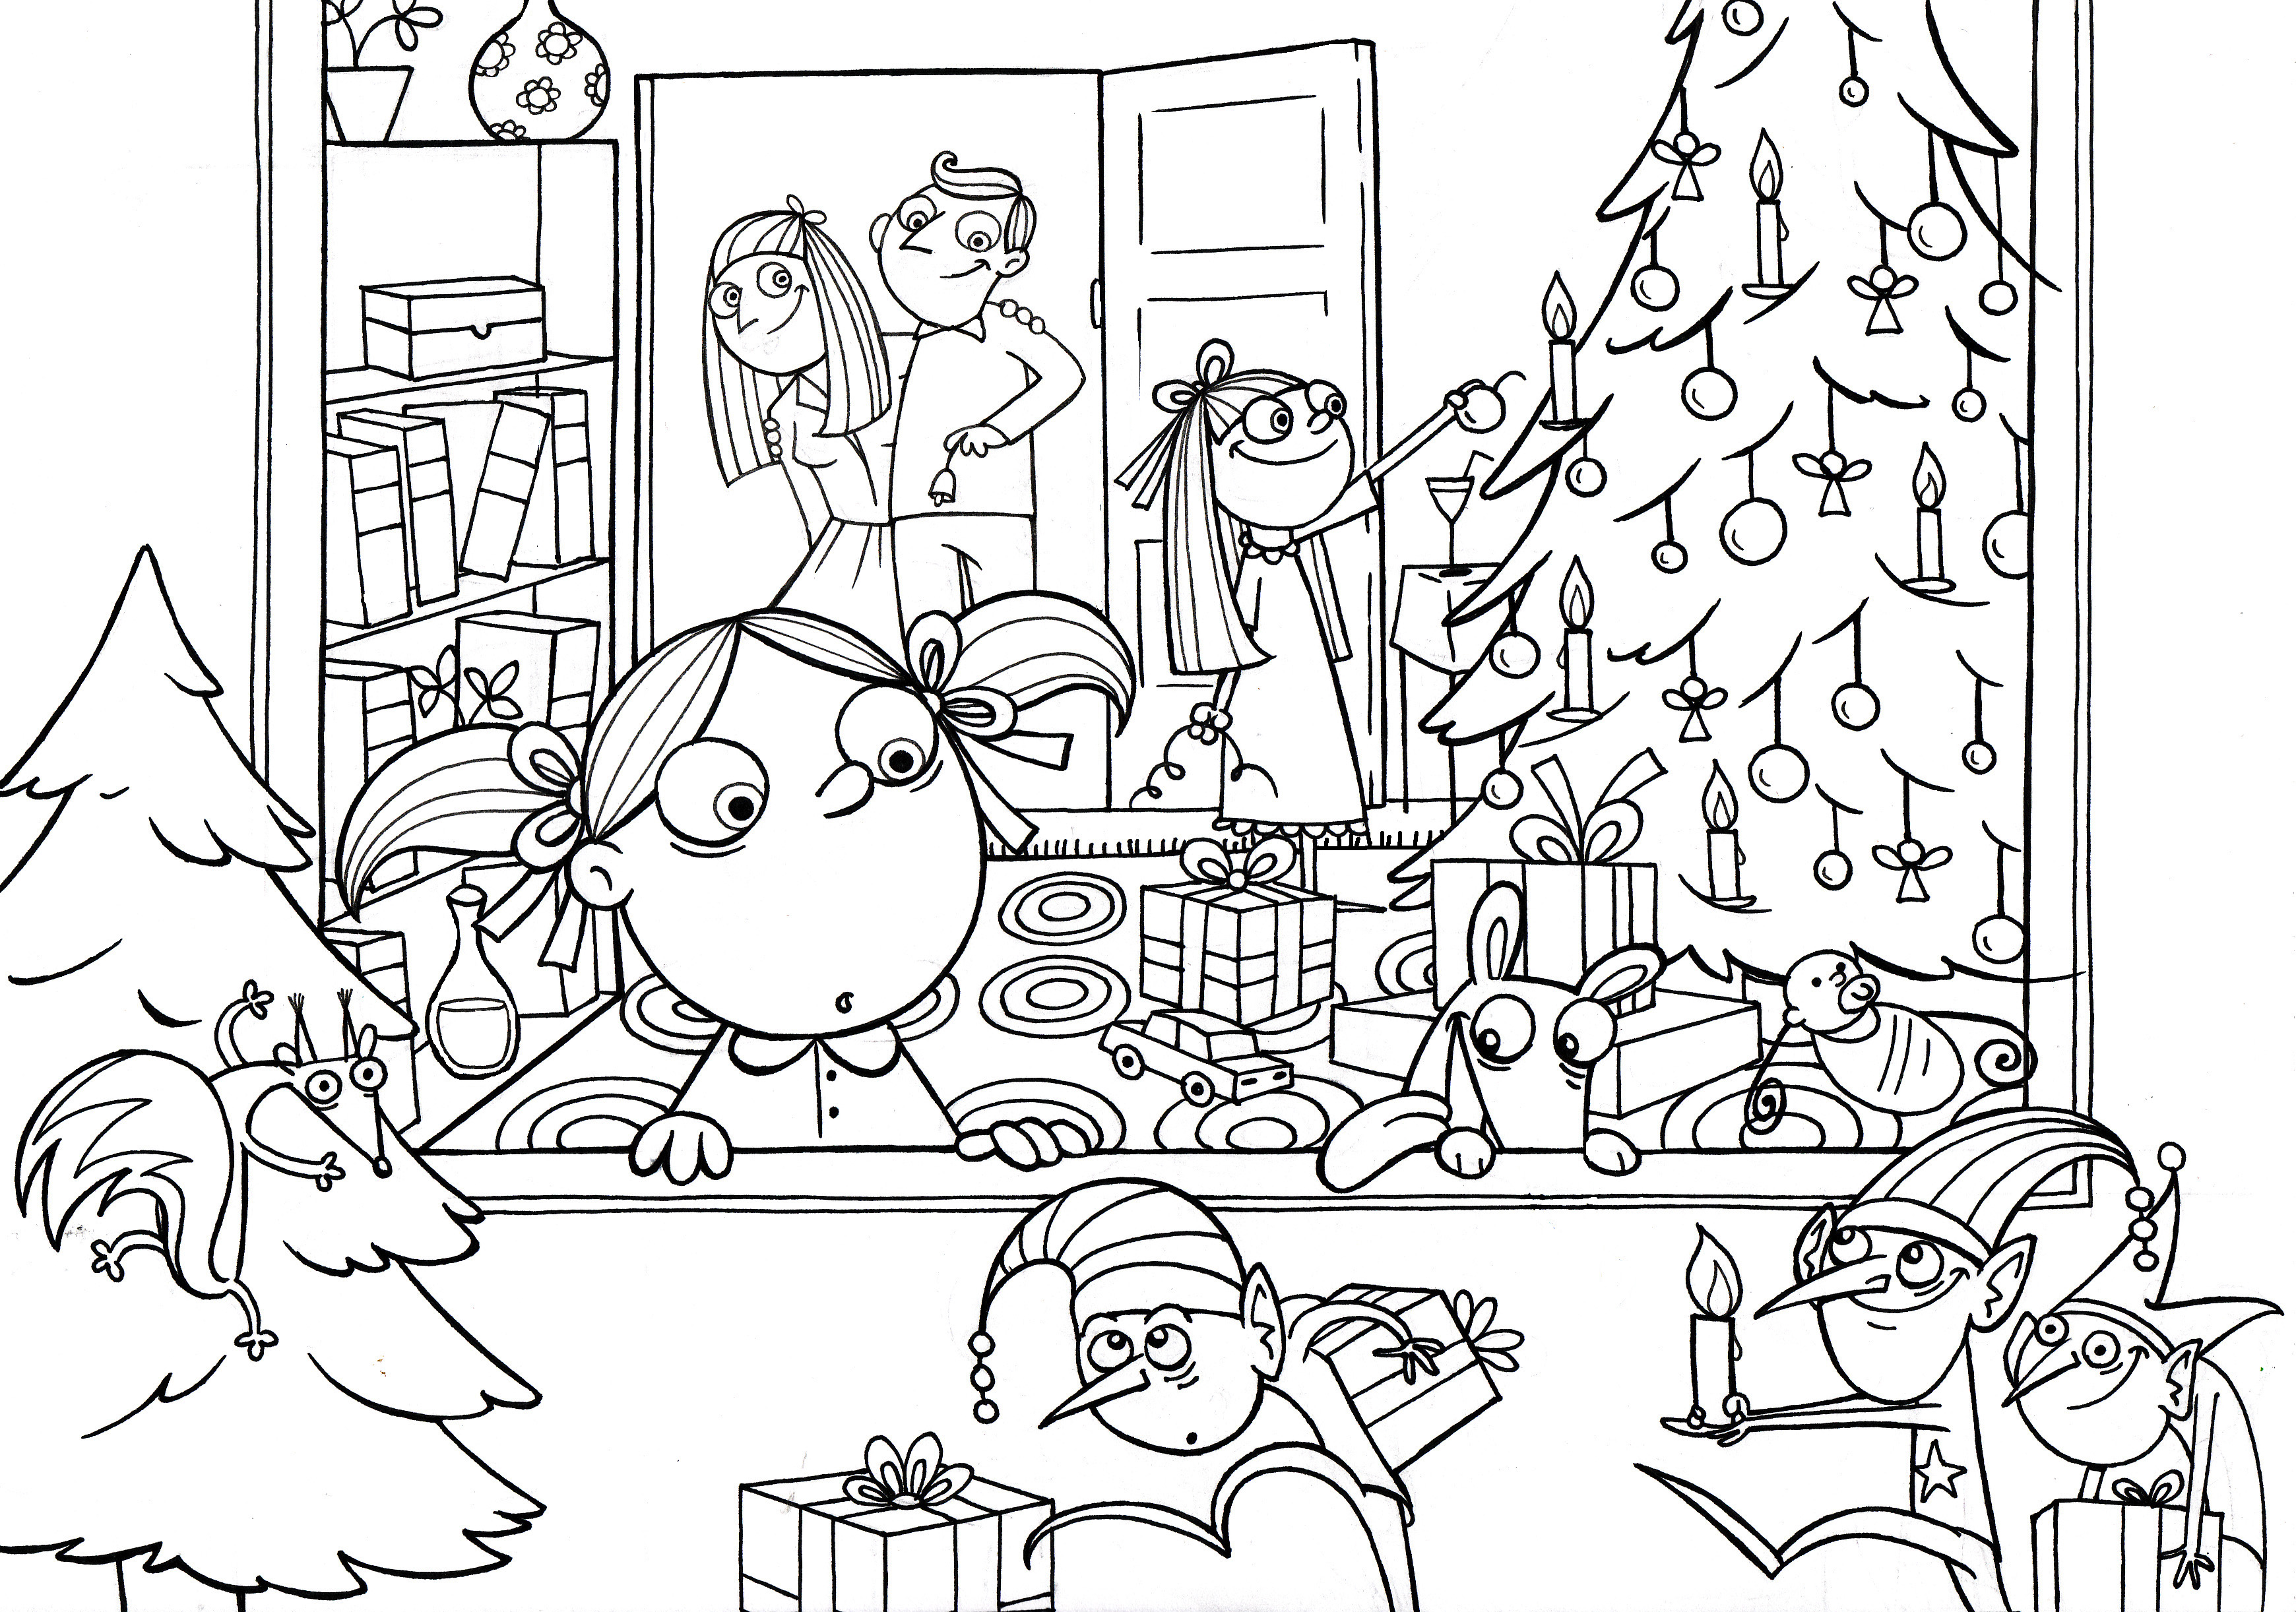 Free coloring pages coming up!